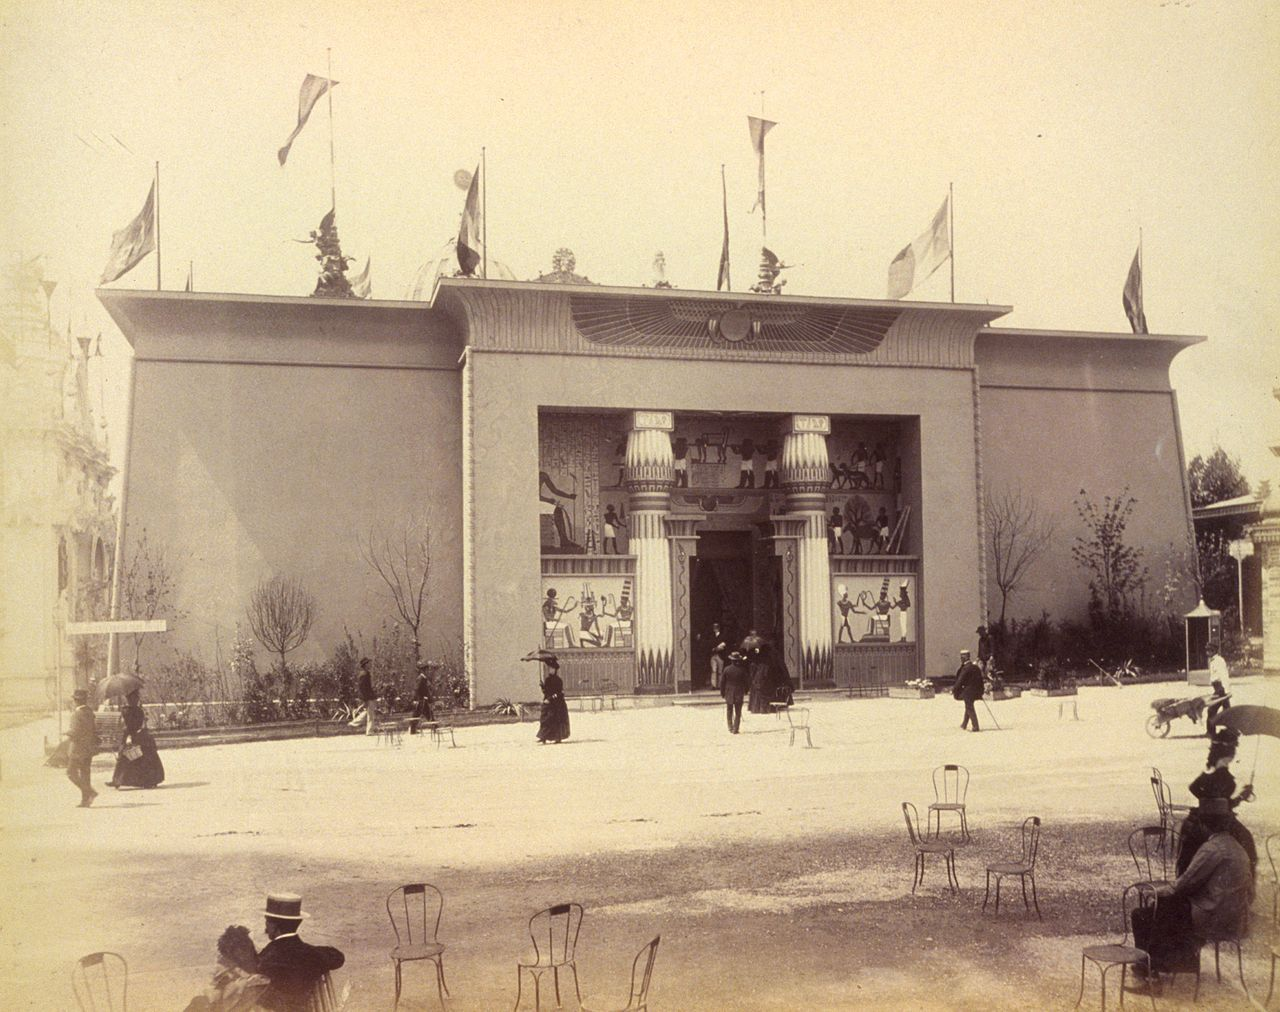 The Pavilion of the Suez Canal Company at the 1889 Exposition, Paris